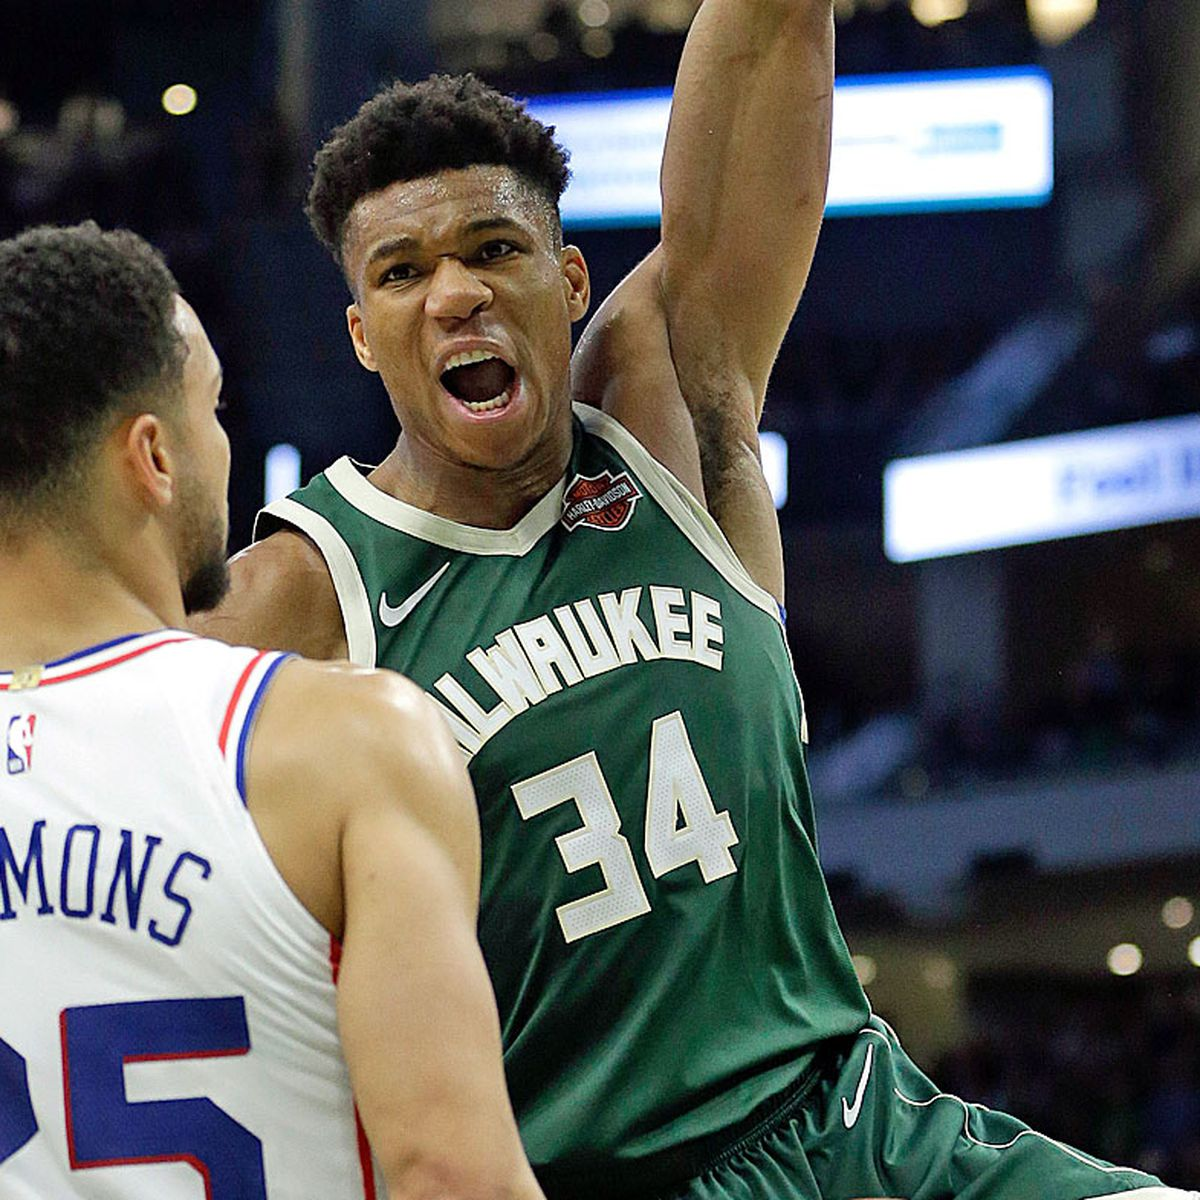 Ben Simmons And Giannis Antetokounmpo Dunk On Each Other As Philadelphia 76ers Down Milwaukee Bucks To Clinch Nba Play Off Spot